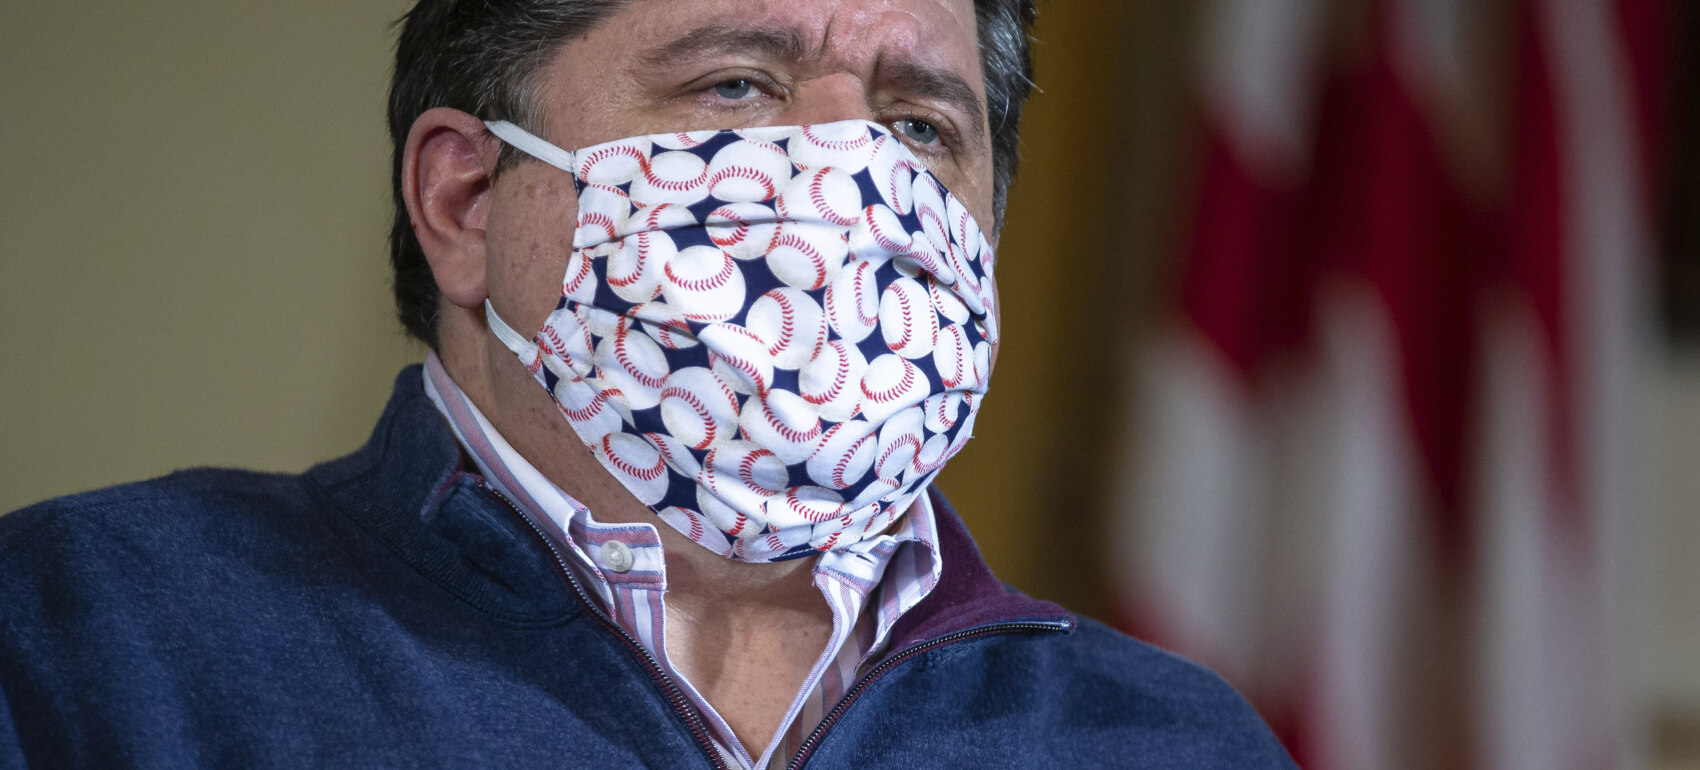 Illinois reopens June 11, but keeps those masks handy